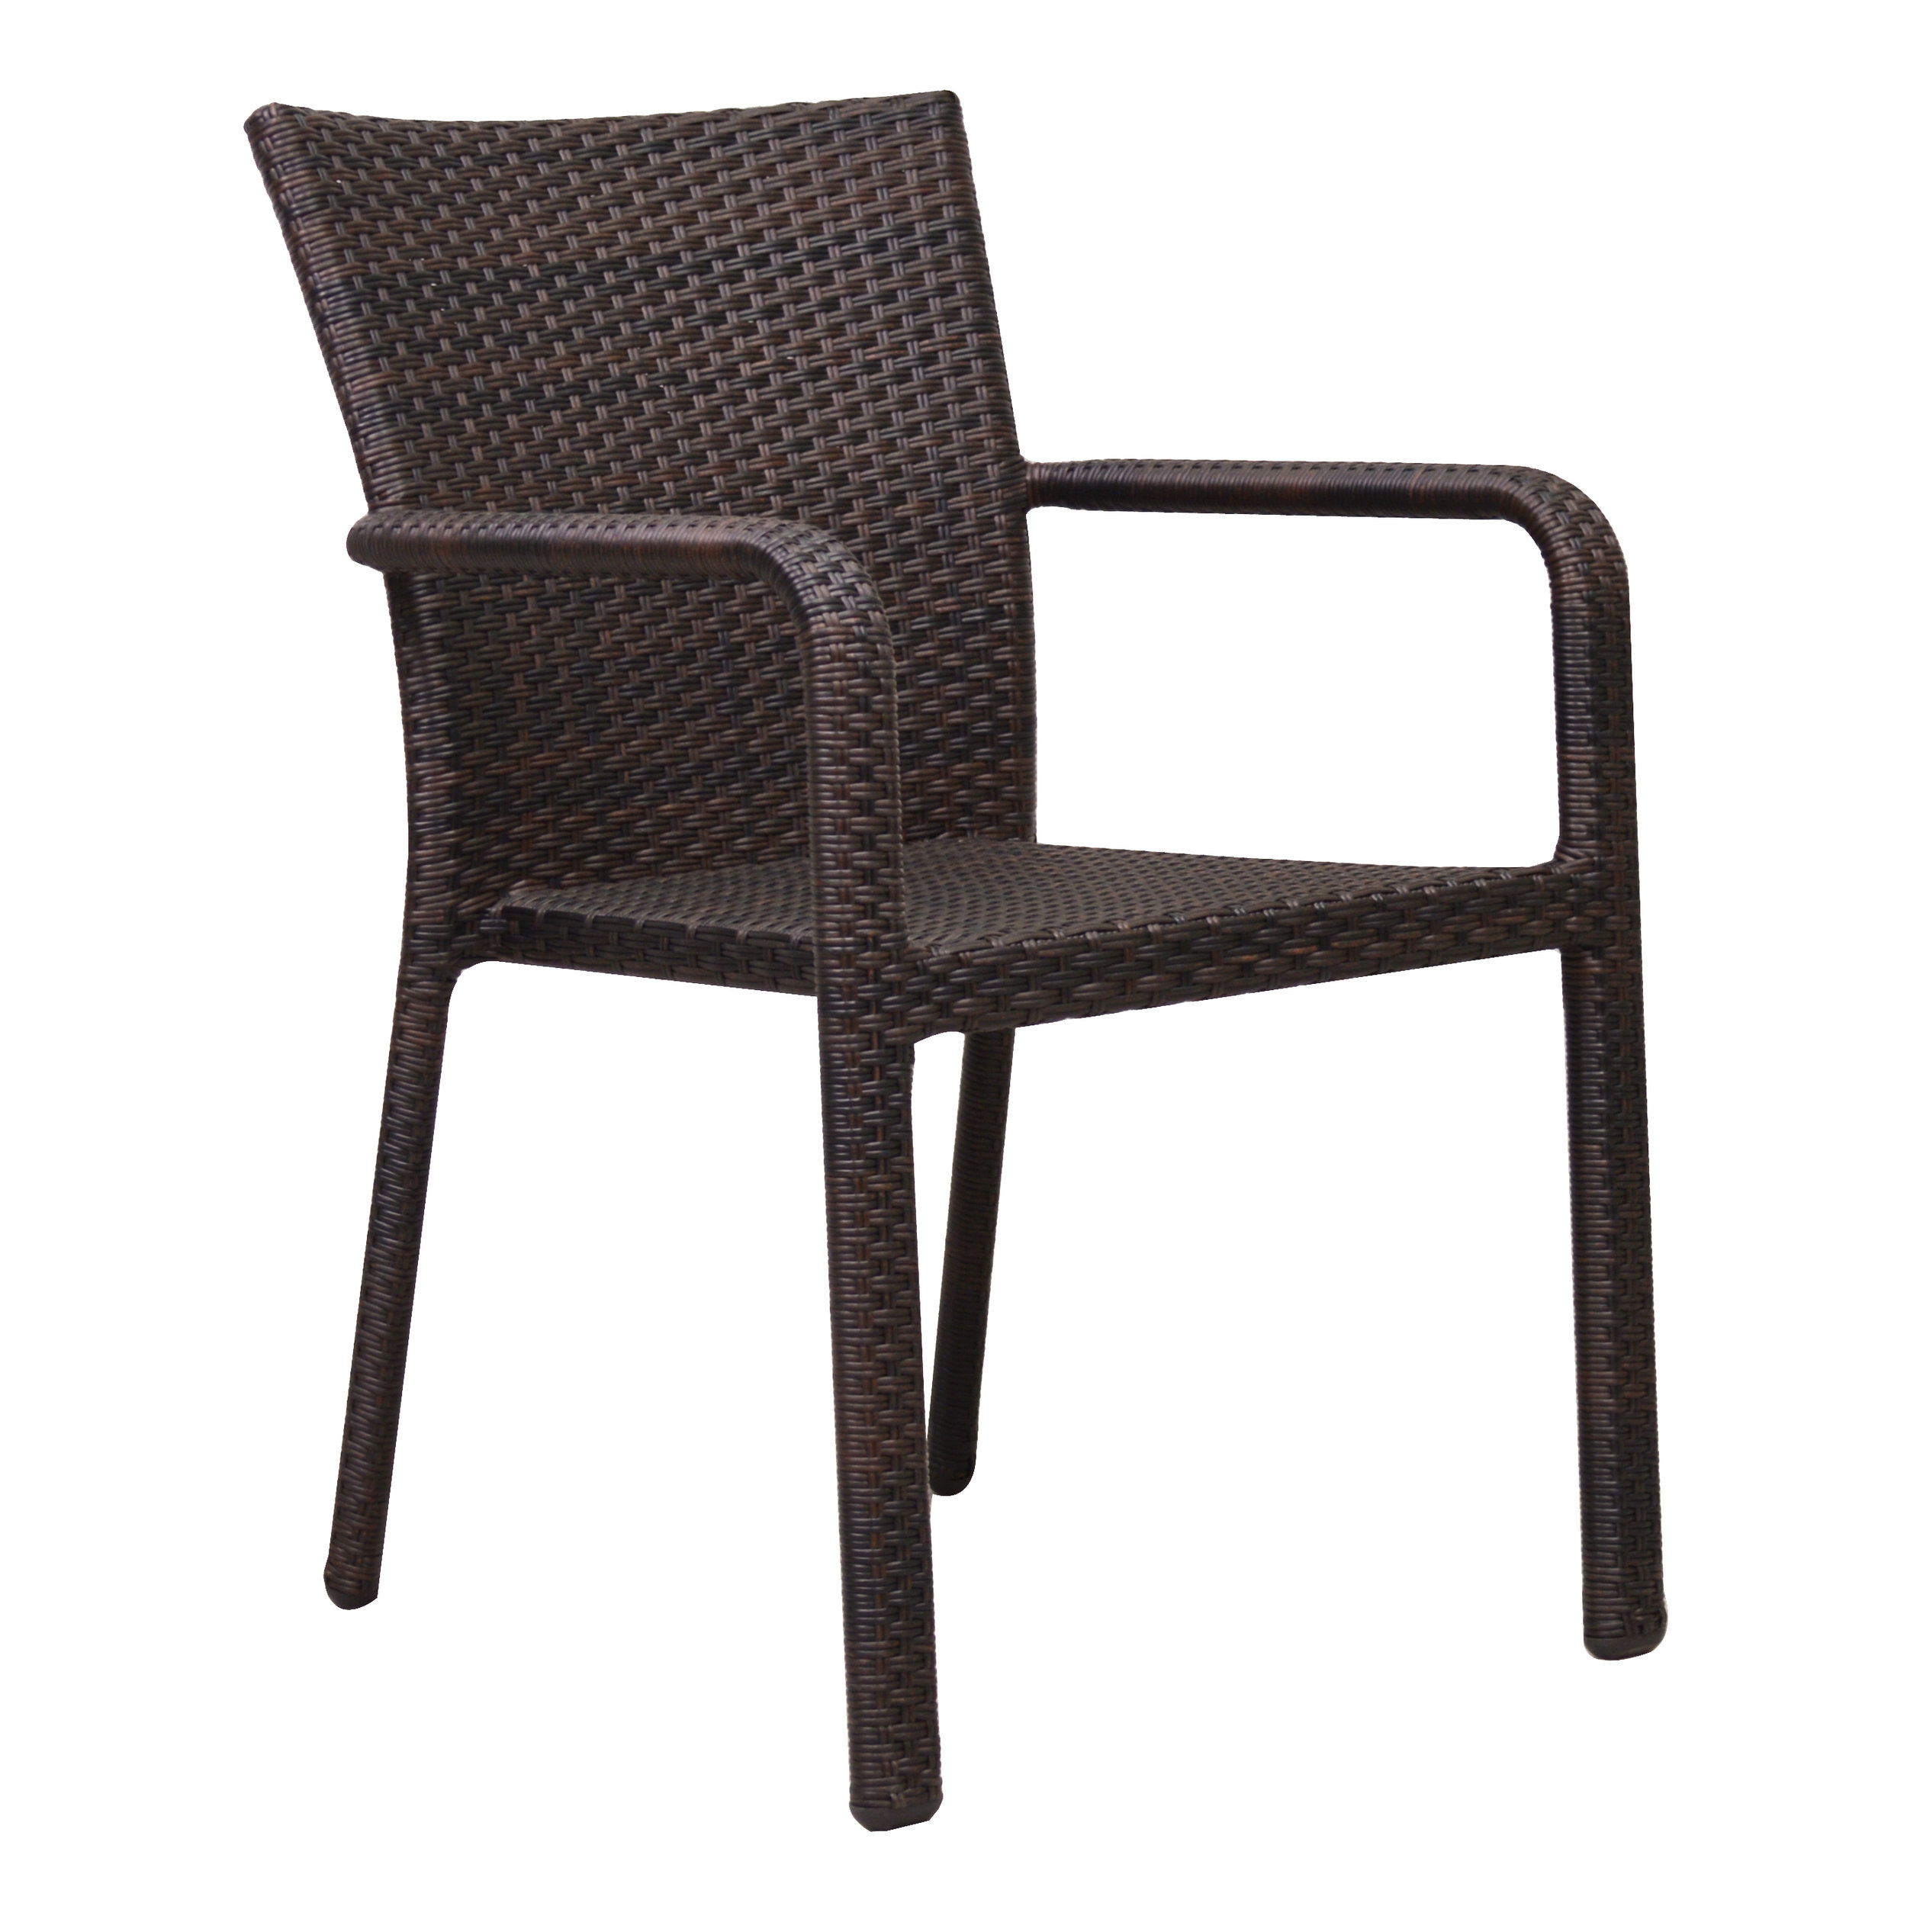 "881721 Napa Bistro Chair   22.5"" x 26"" x 36"""